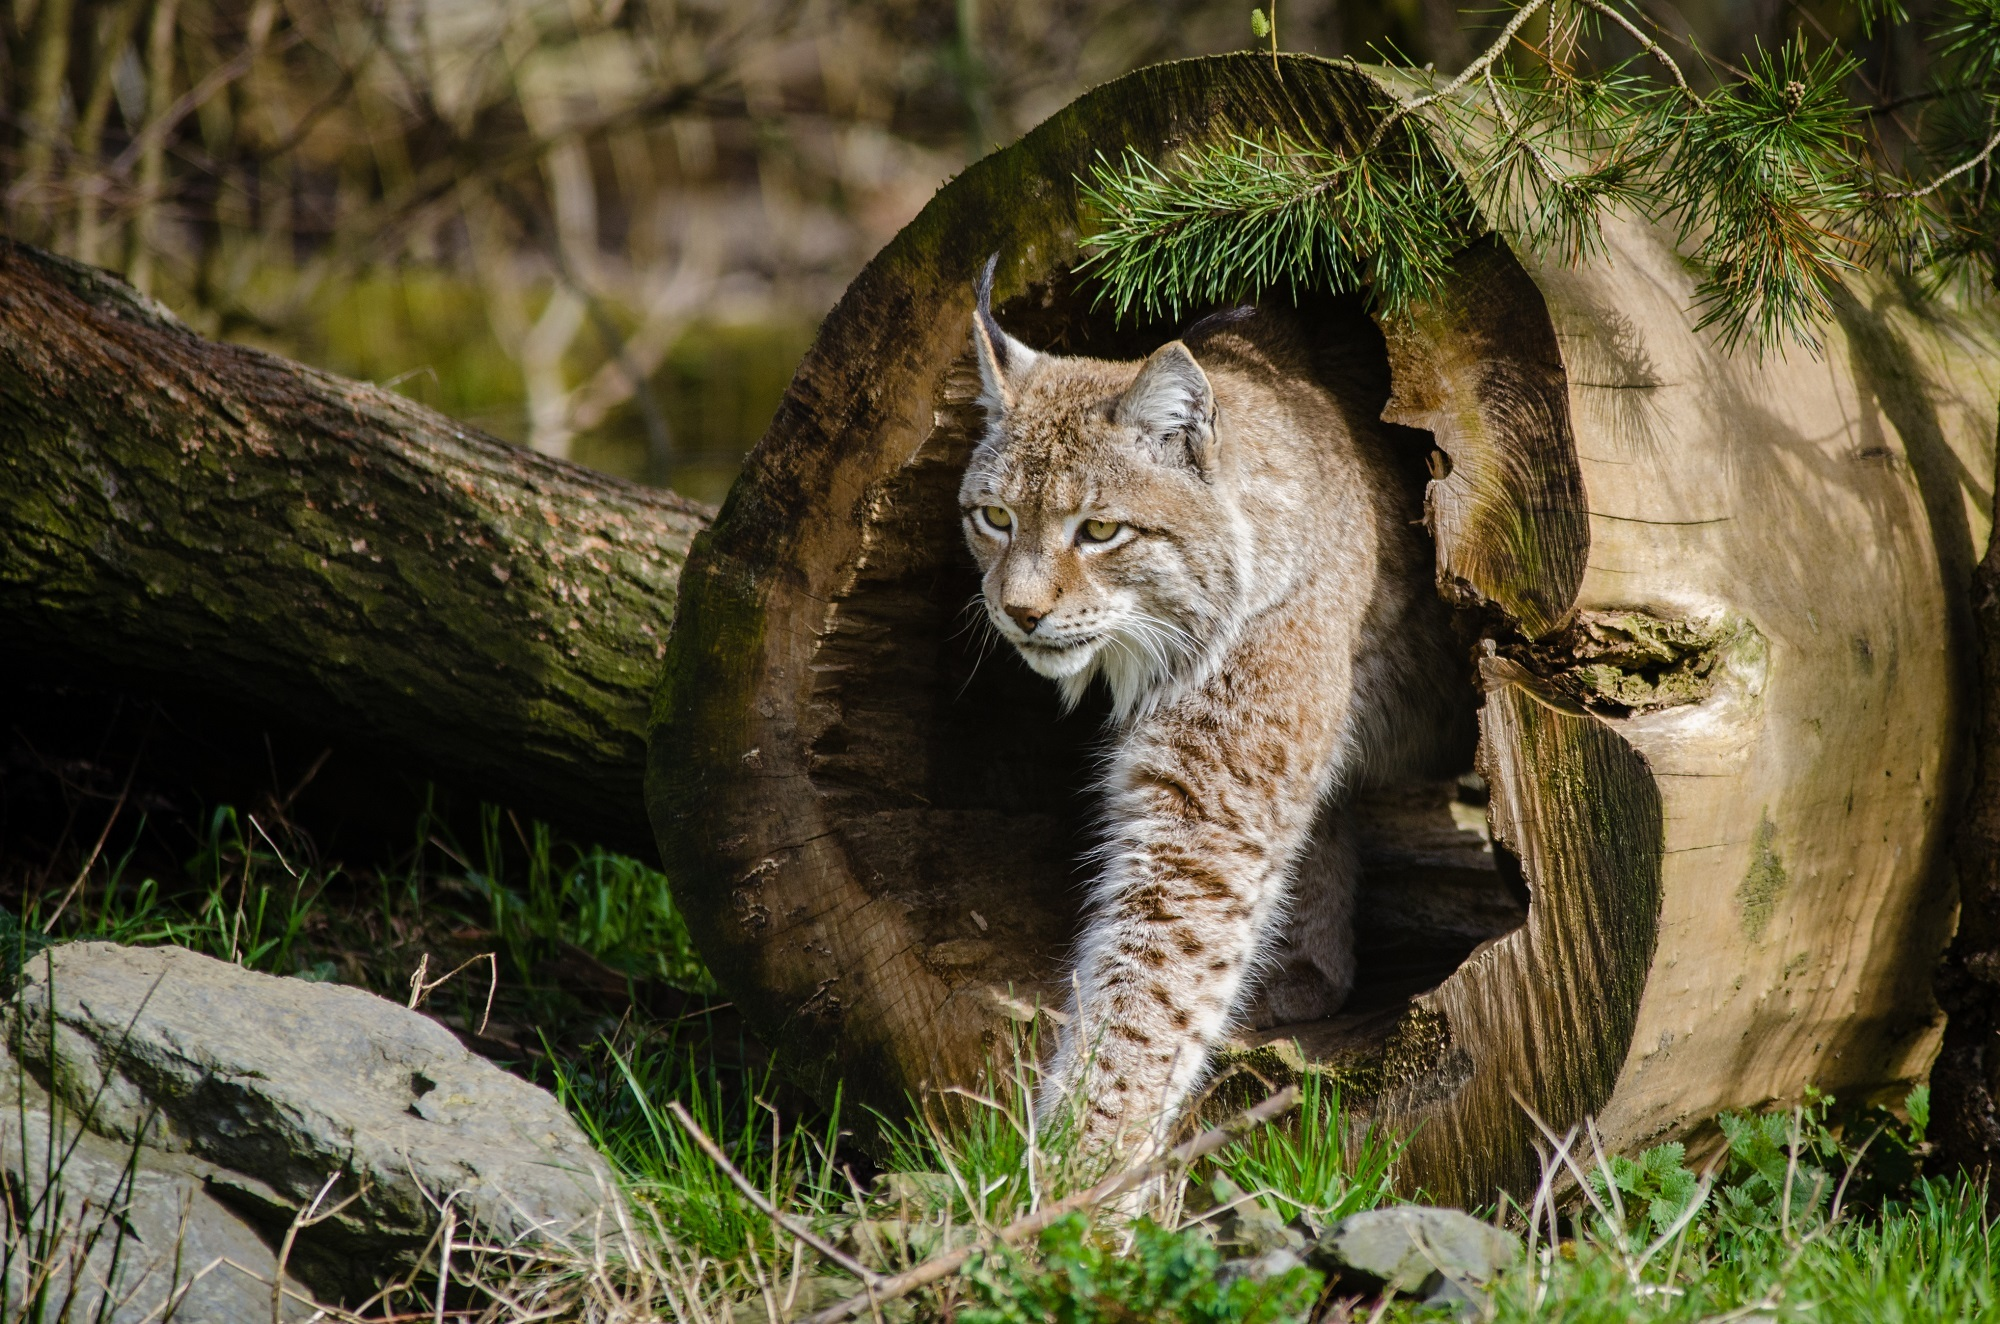 Lynx in the Jungle, Animal, Cat, Forest, Jungle, HQ Photo